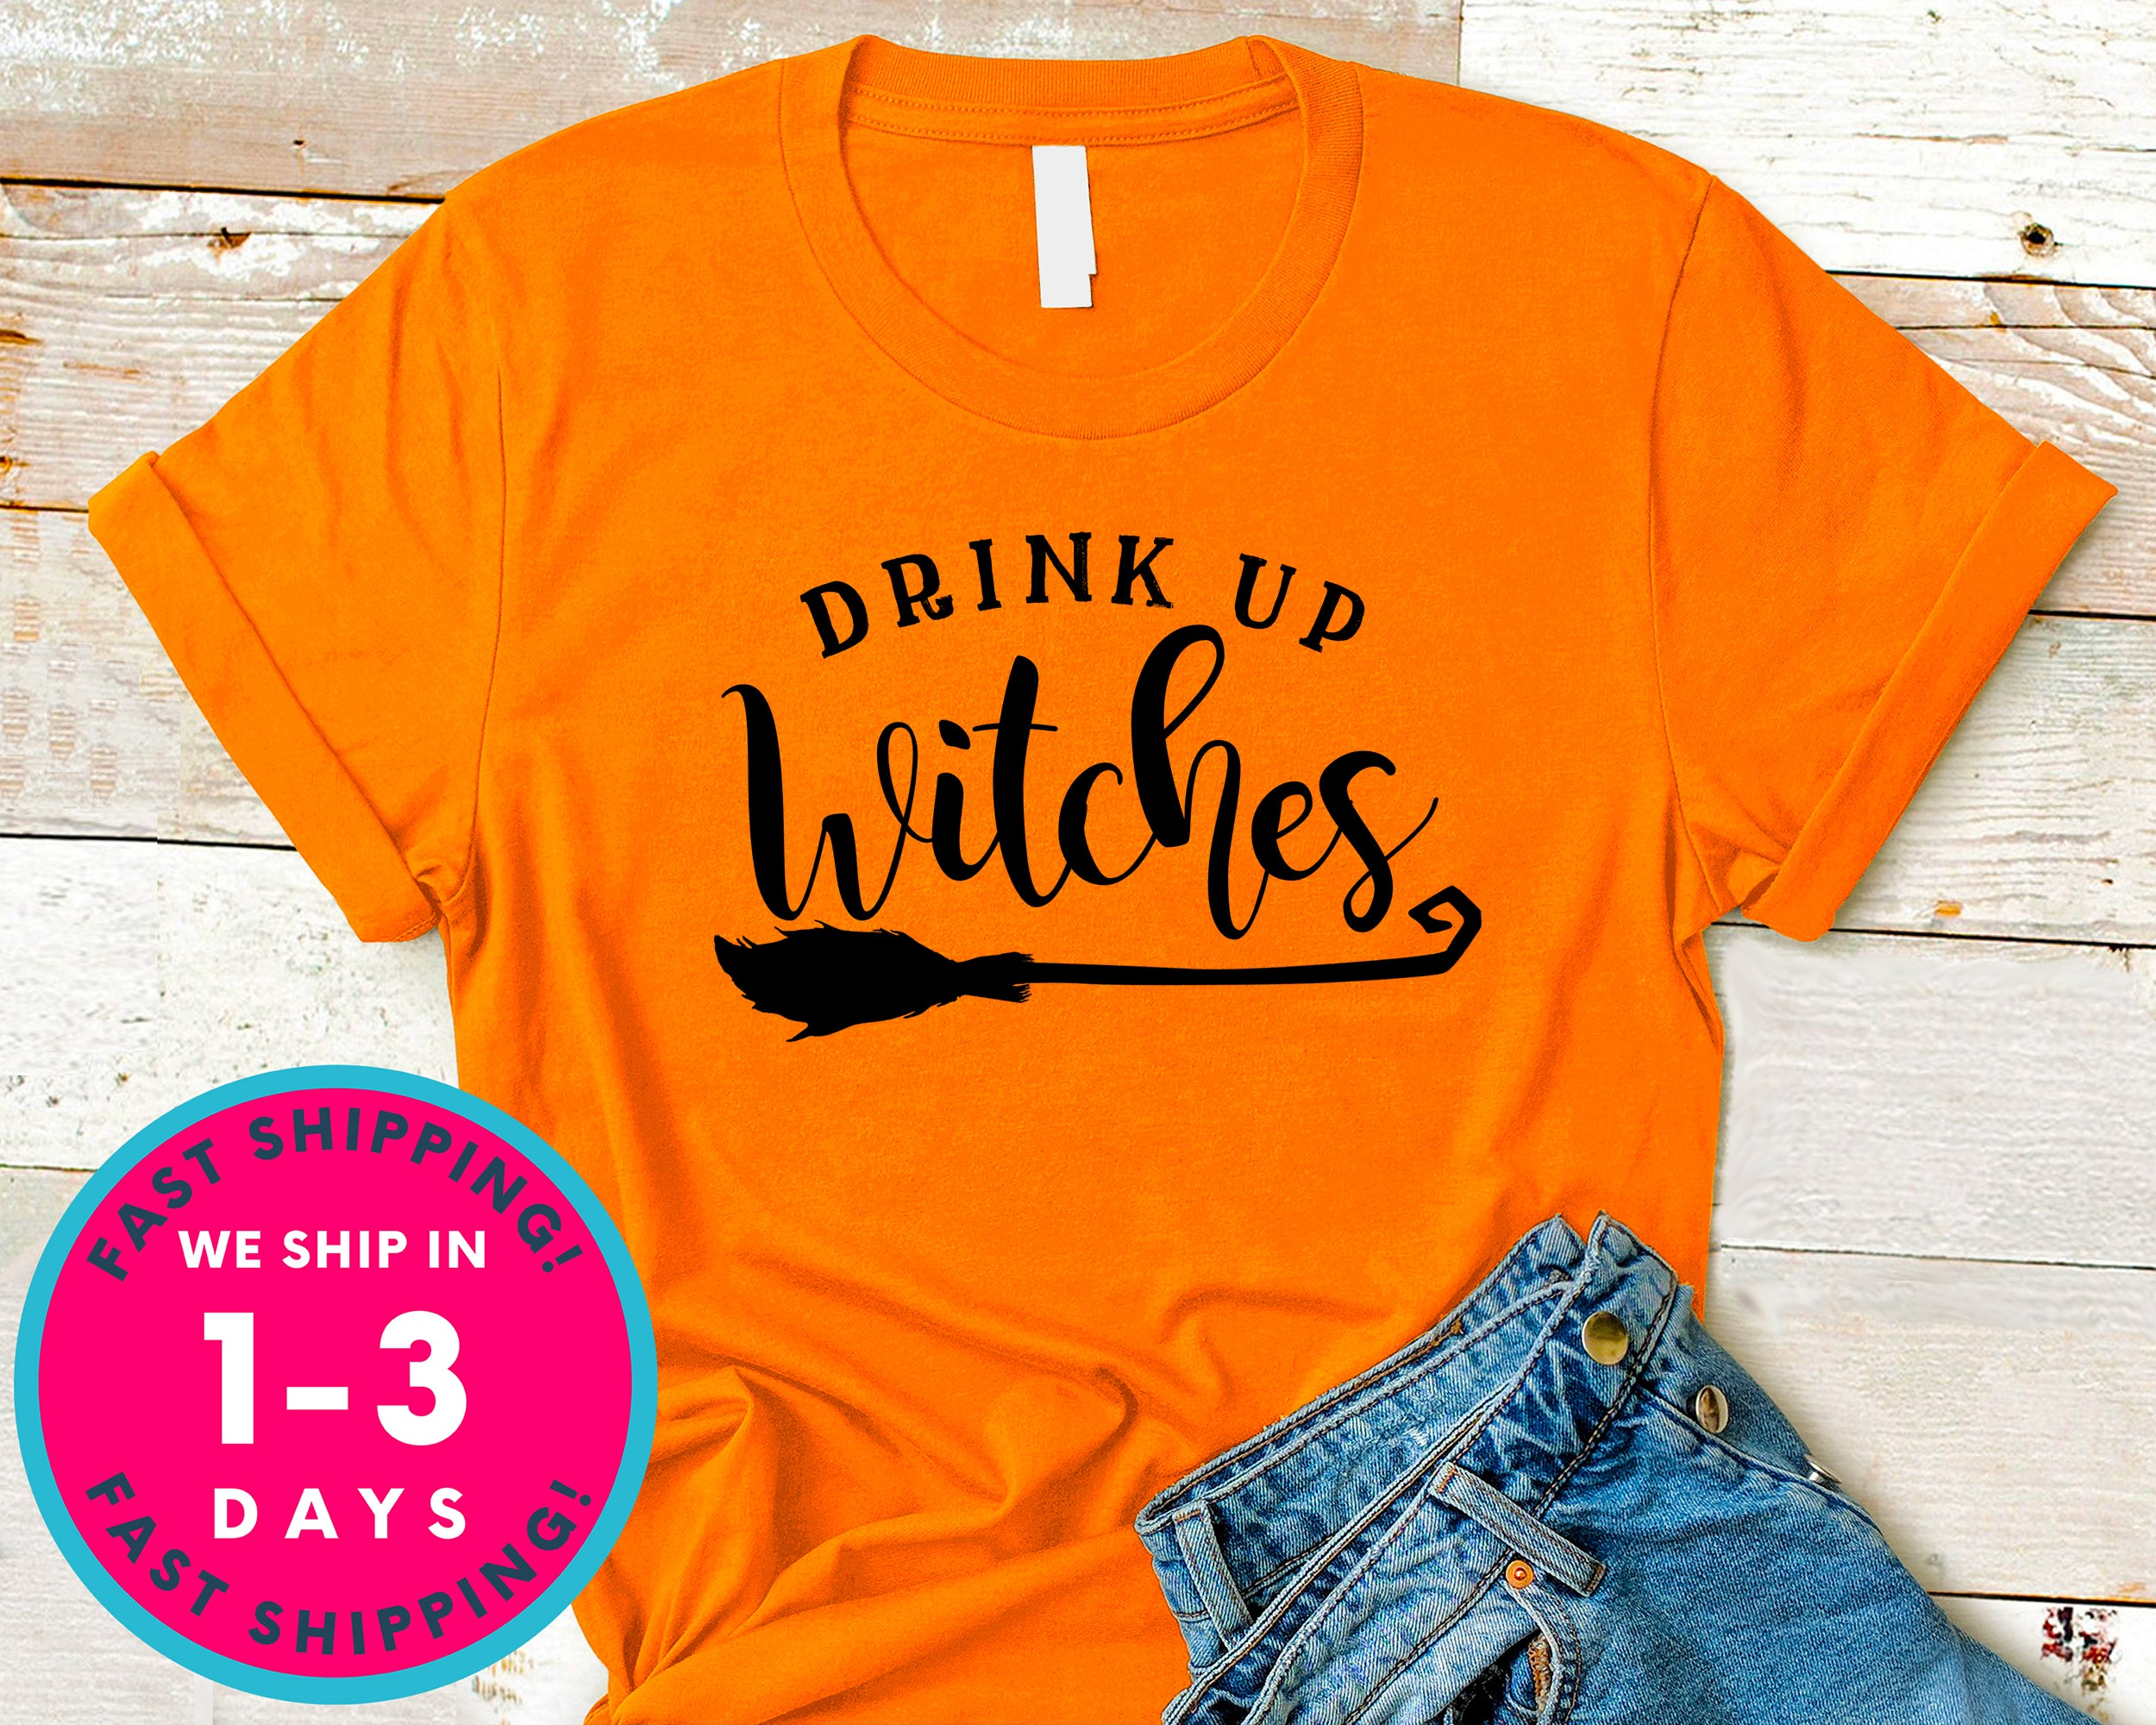 Drink Up Witches T-Shirt - Halloween Horror Scary Shirt